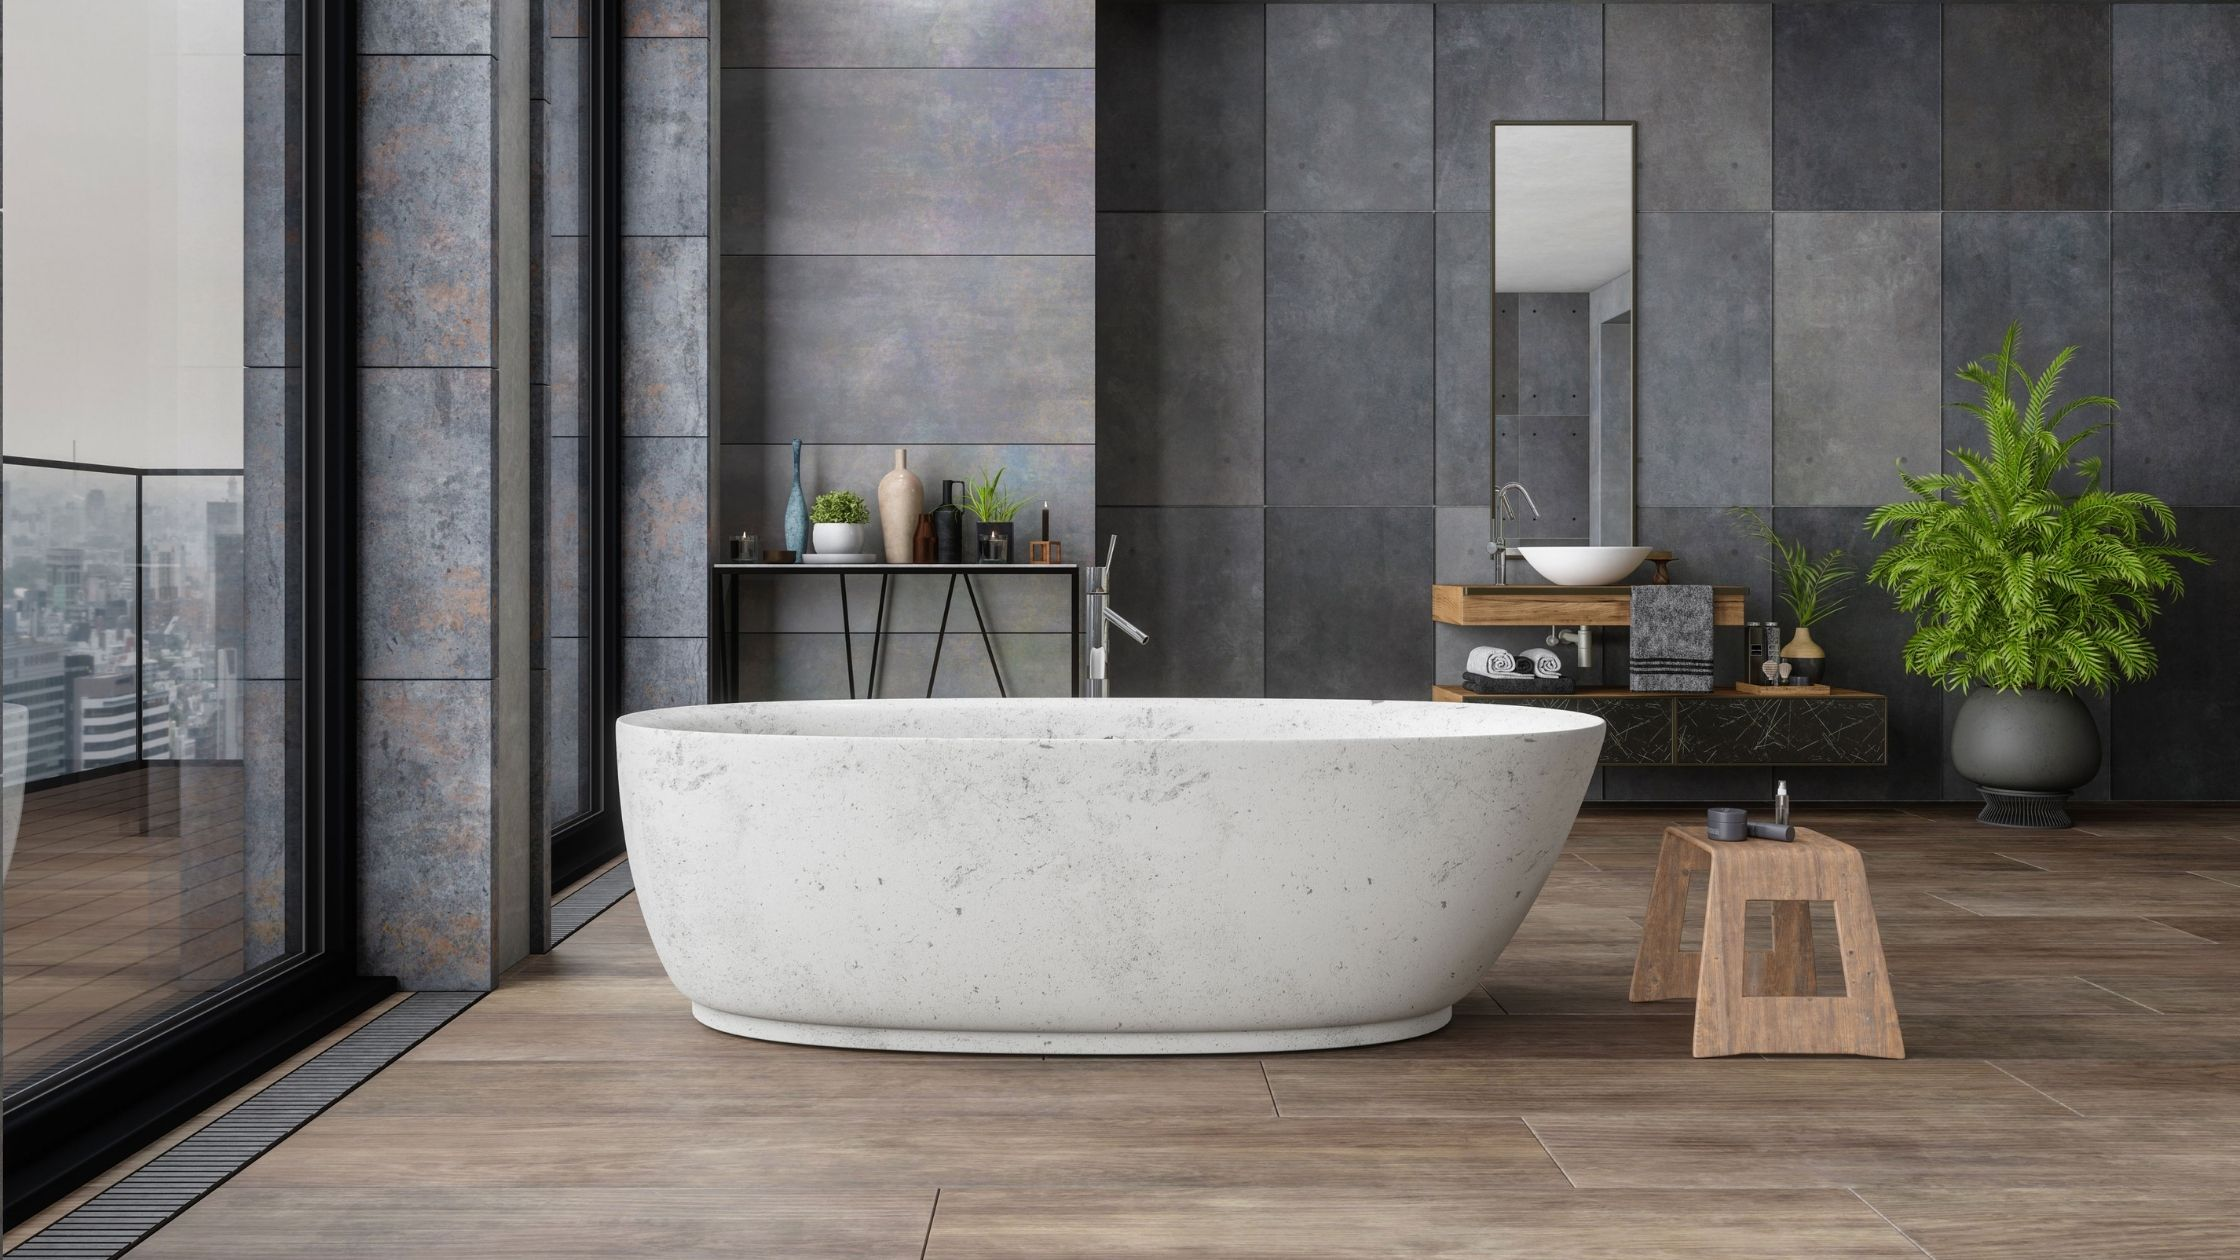 Washroom, wooden floor and and dark stone wall tiles, white ceramic bath